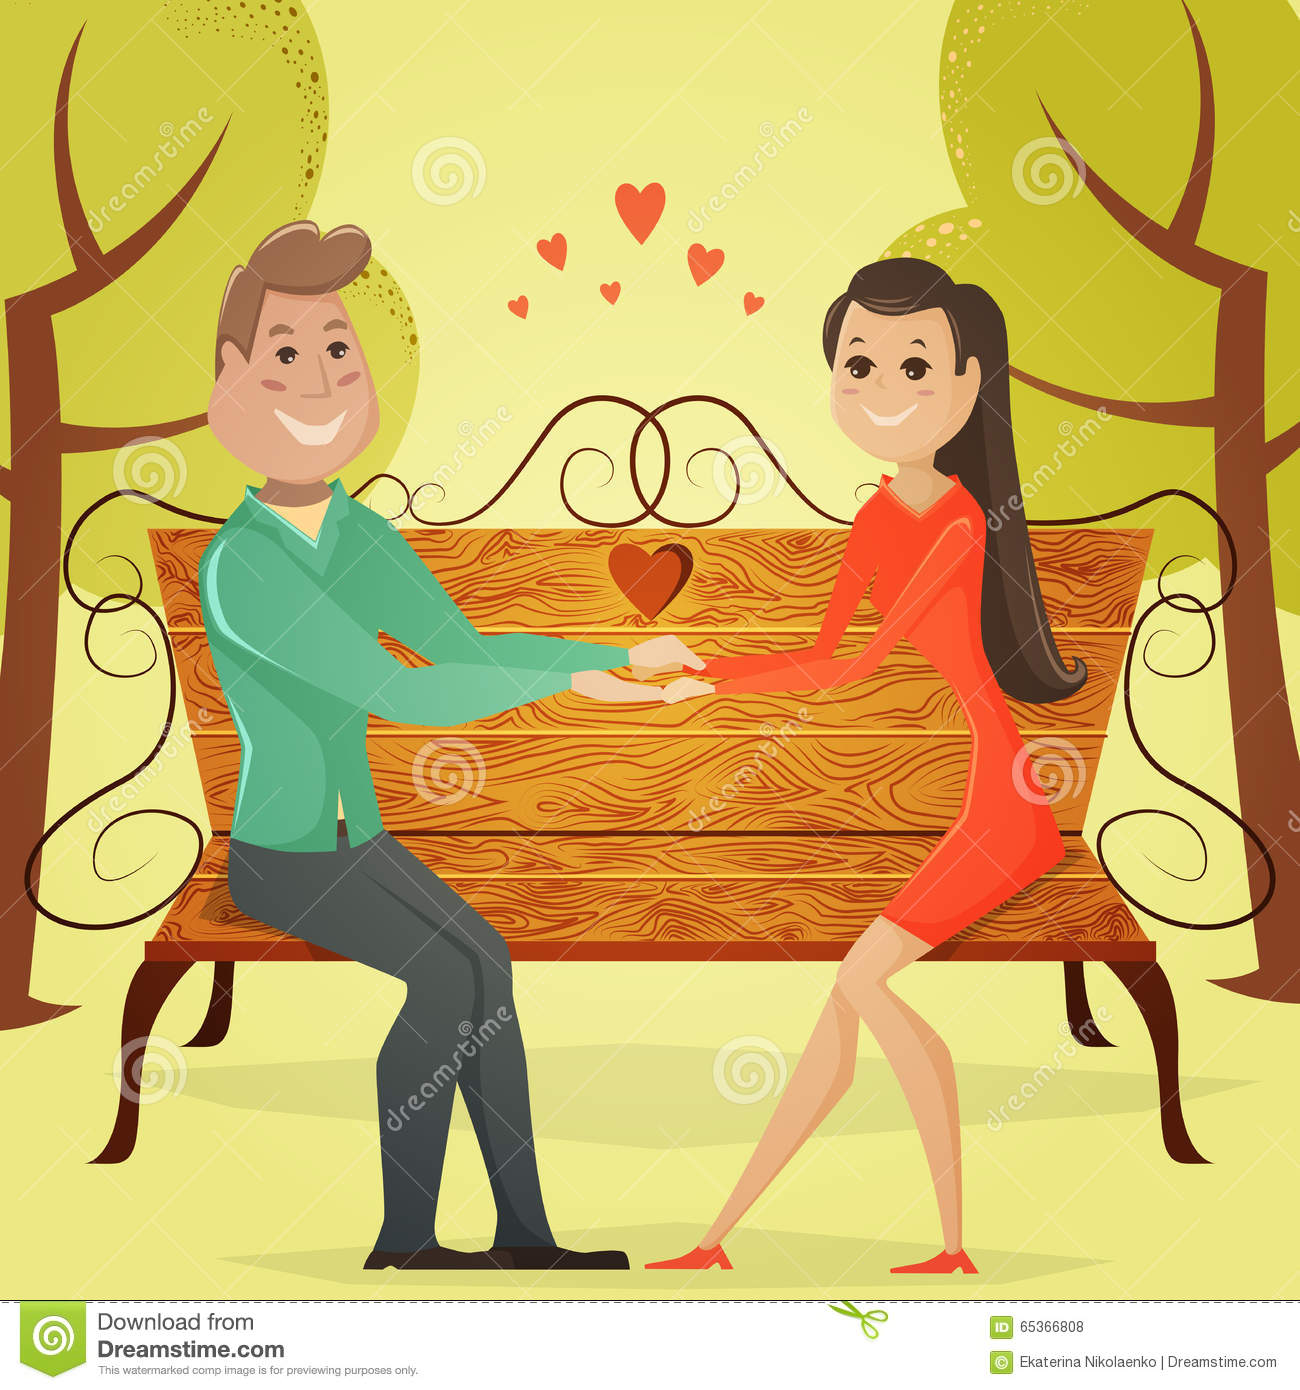 Loving Couple On A Bench In The Park. Cartoon Vector Illustration.